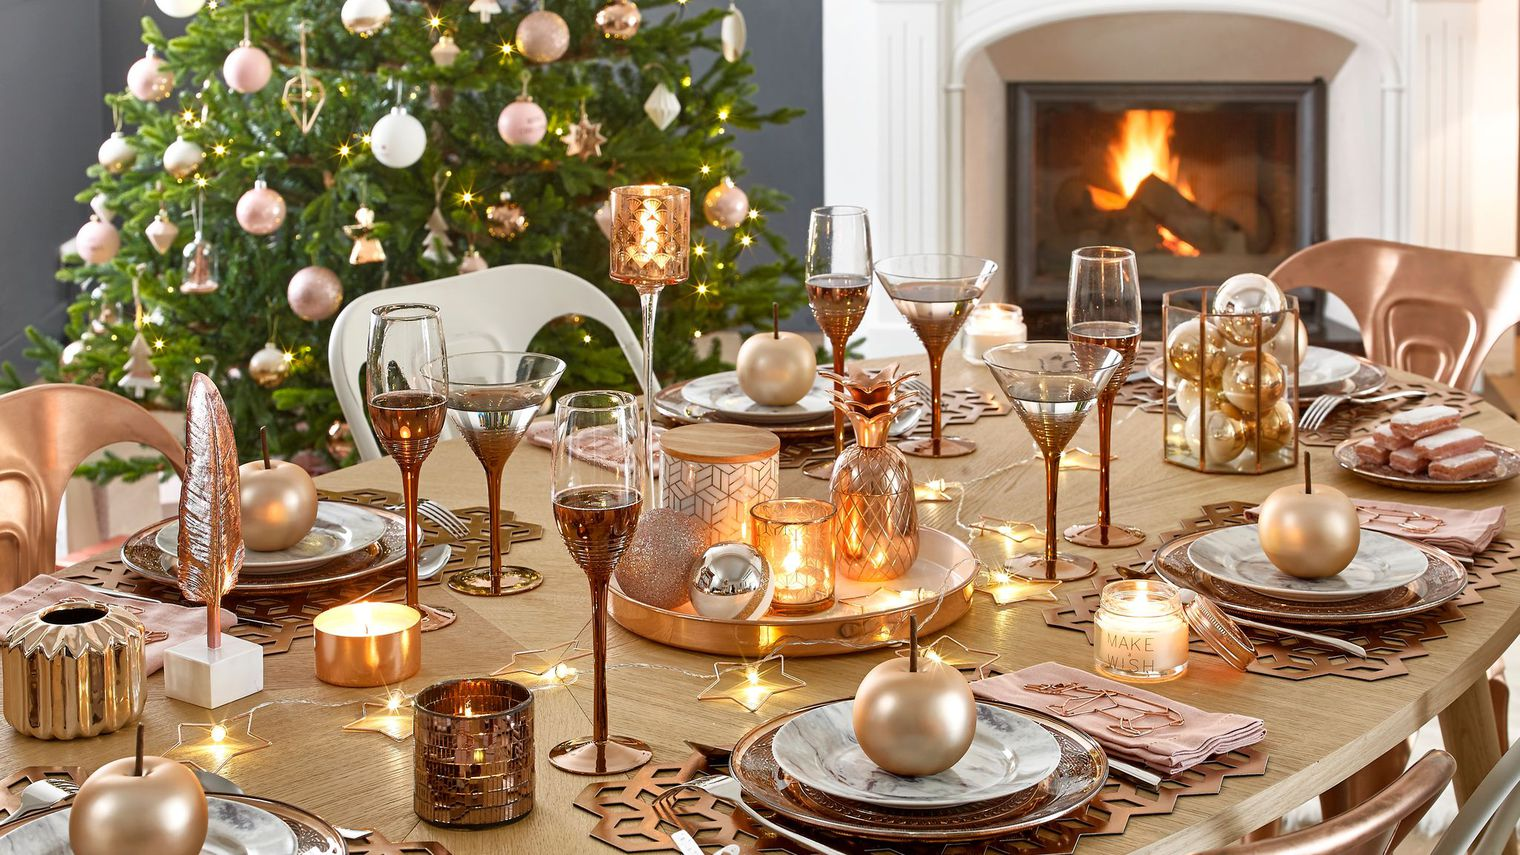 Une jolie d co pour no l justine huette cr atrice de - Decoration de table de noel a fabriquer ...